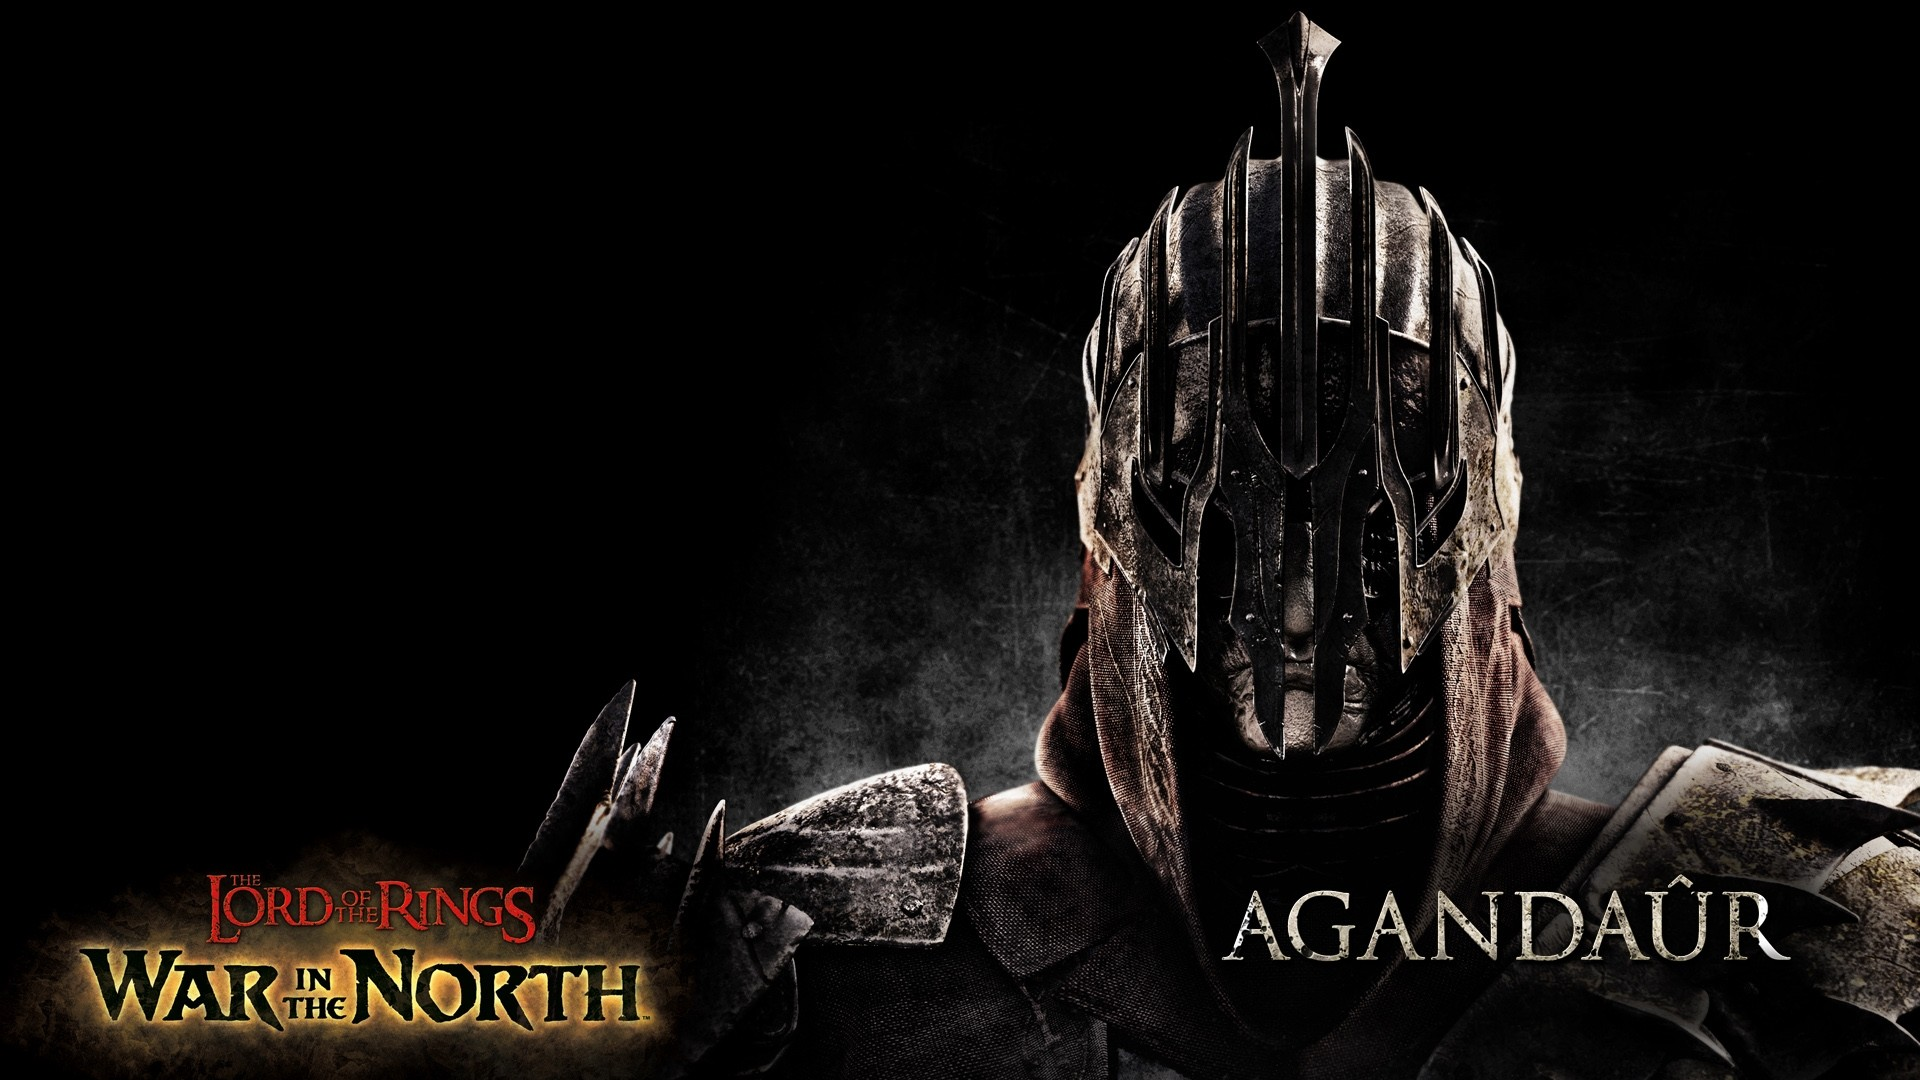 Res: 1920x1080, Lord of The Rings Agandaur Wallpapers HDTV 1080p